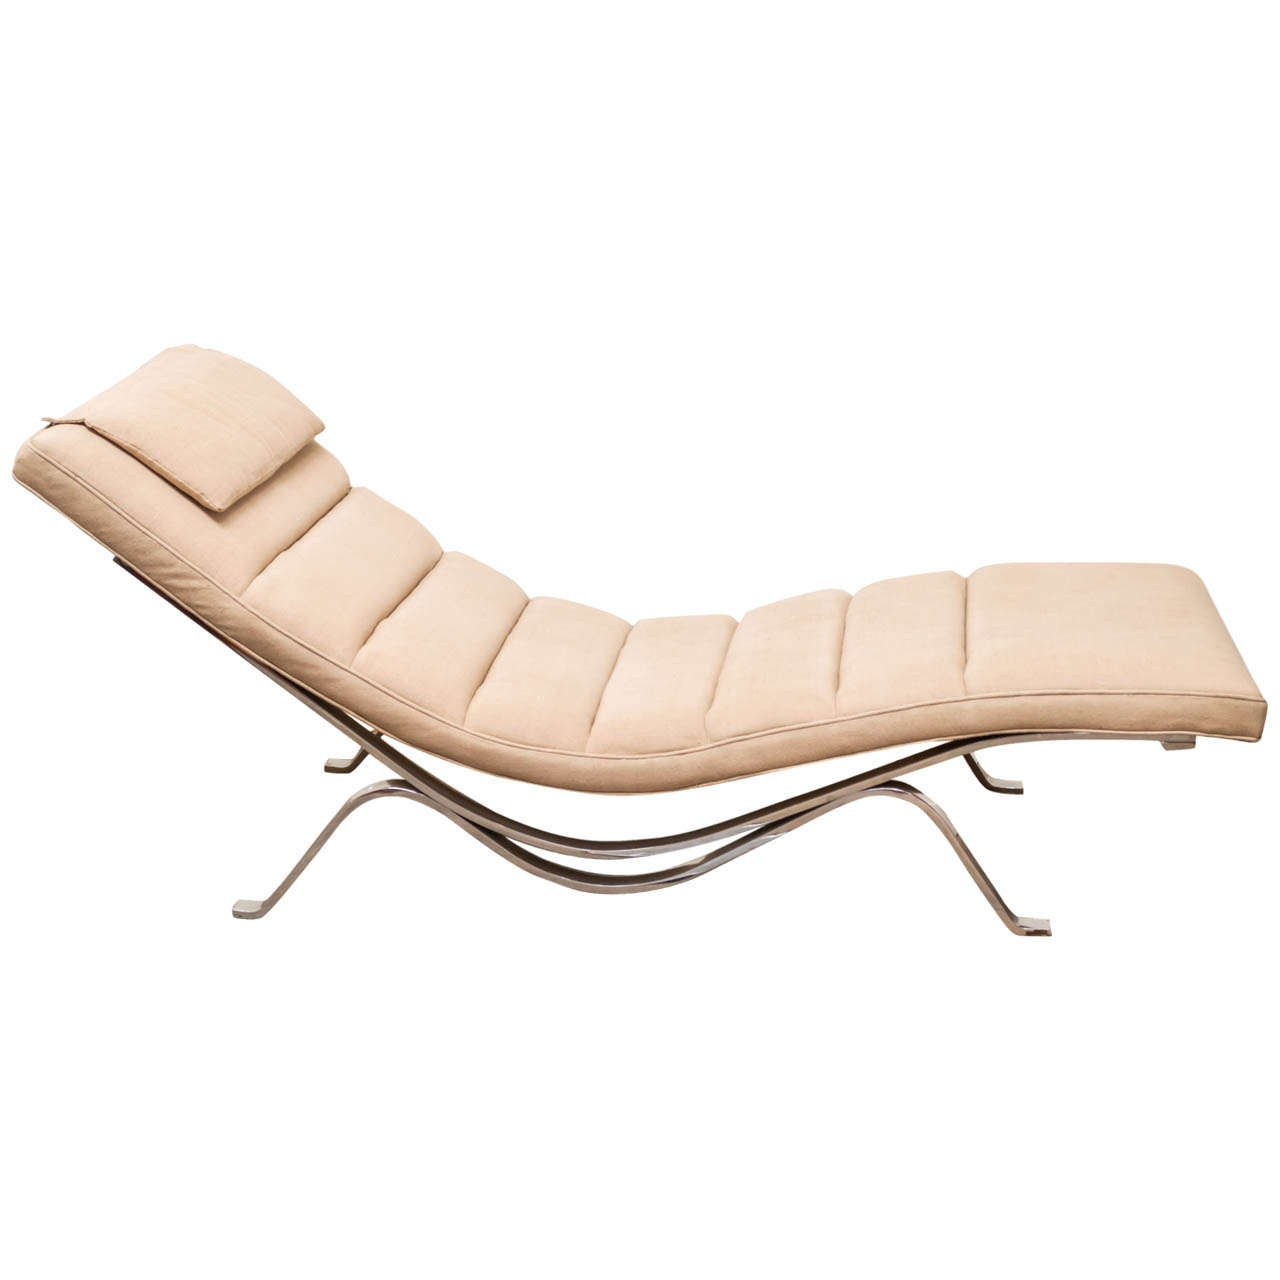 George nelson chaise lounge for sale at 1stdibs for Chaise longue lounge